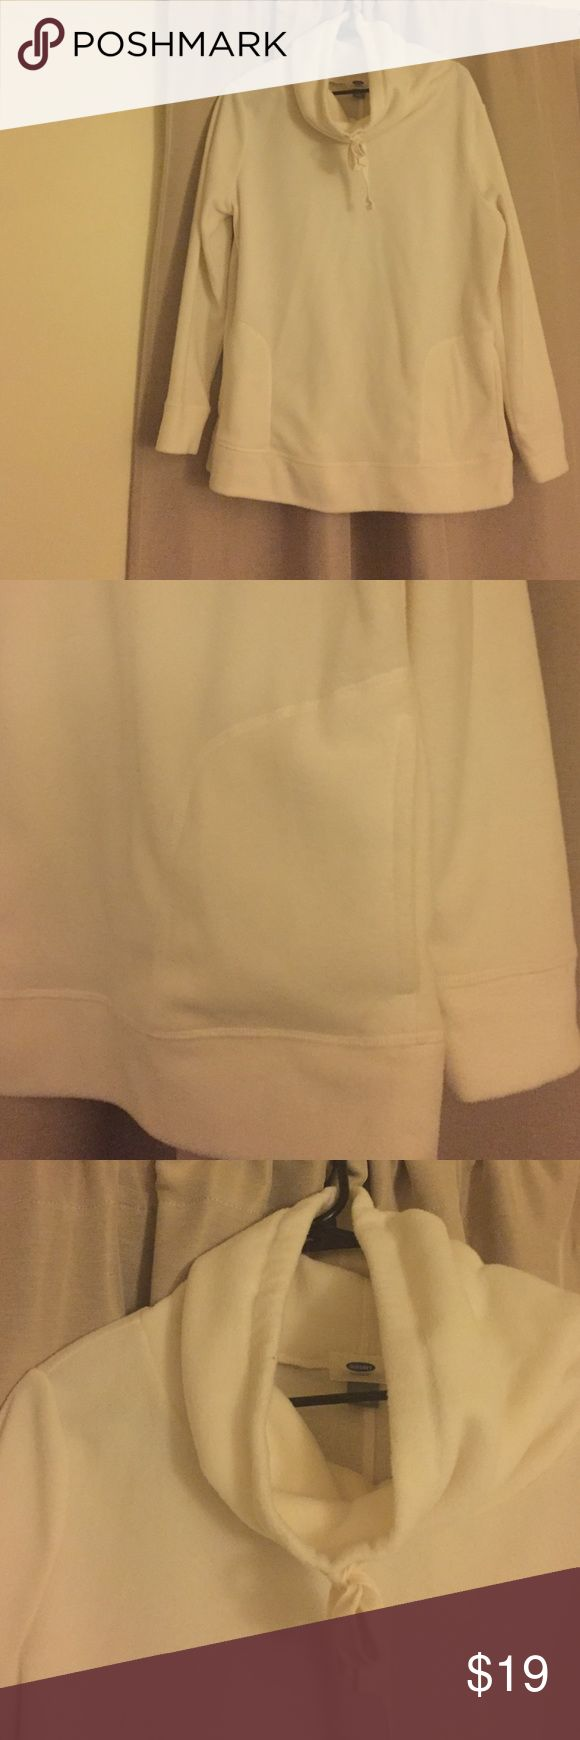 Off white pull over Old Navy sweatshirt Very comfy off-white Old Navy pull over sweatshirt. Polyester material. Women's size M. Like new. Old Navy Tops Sweatshirts & Hoodies